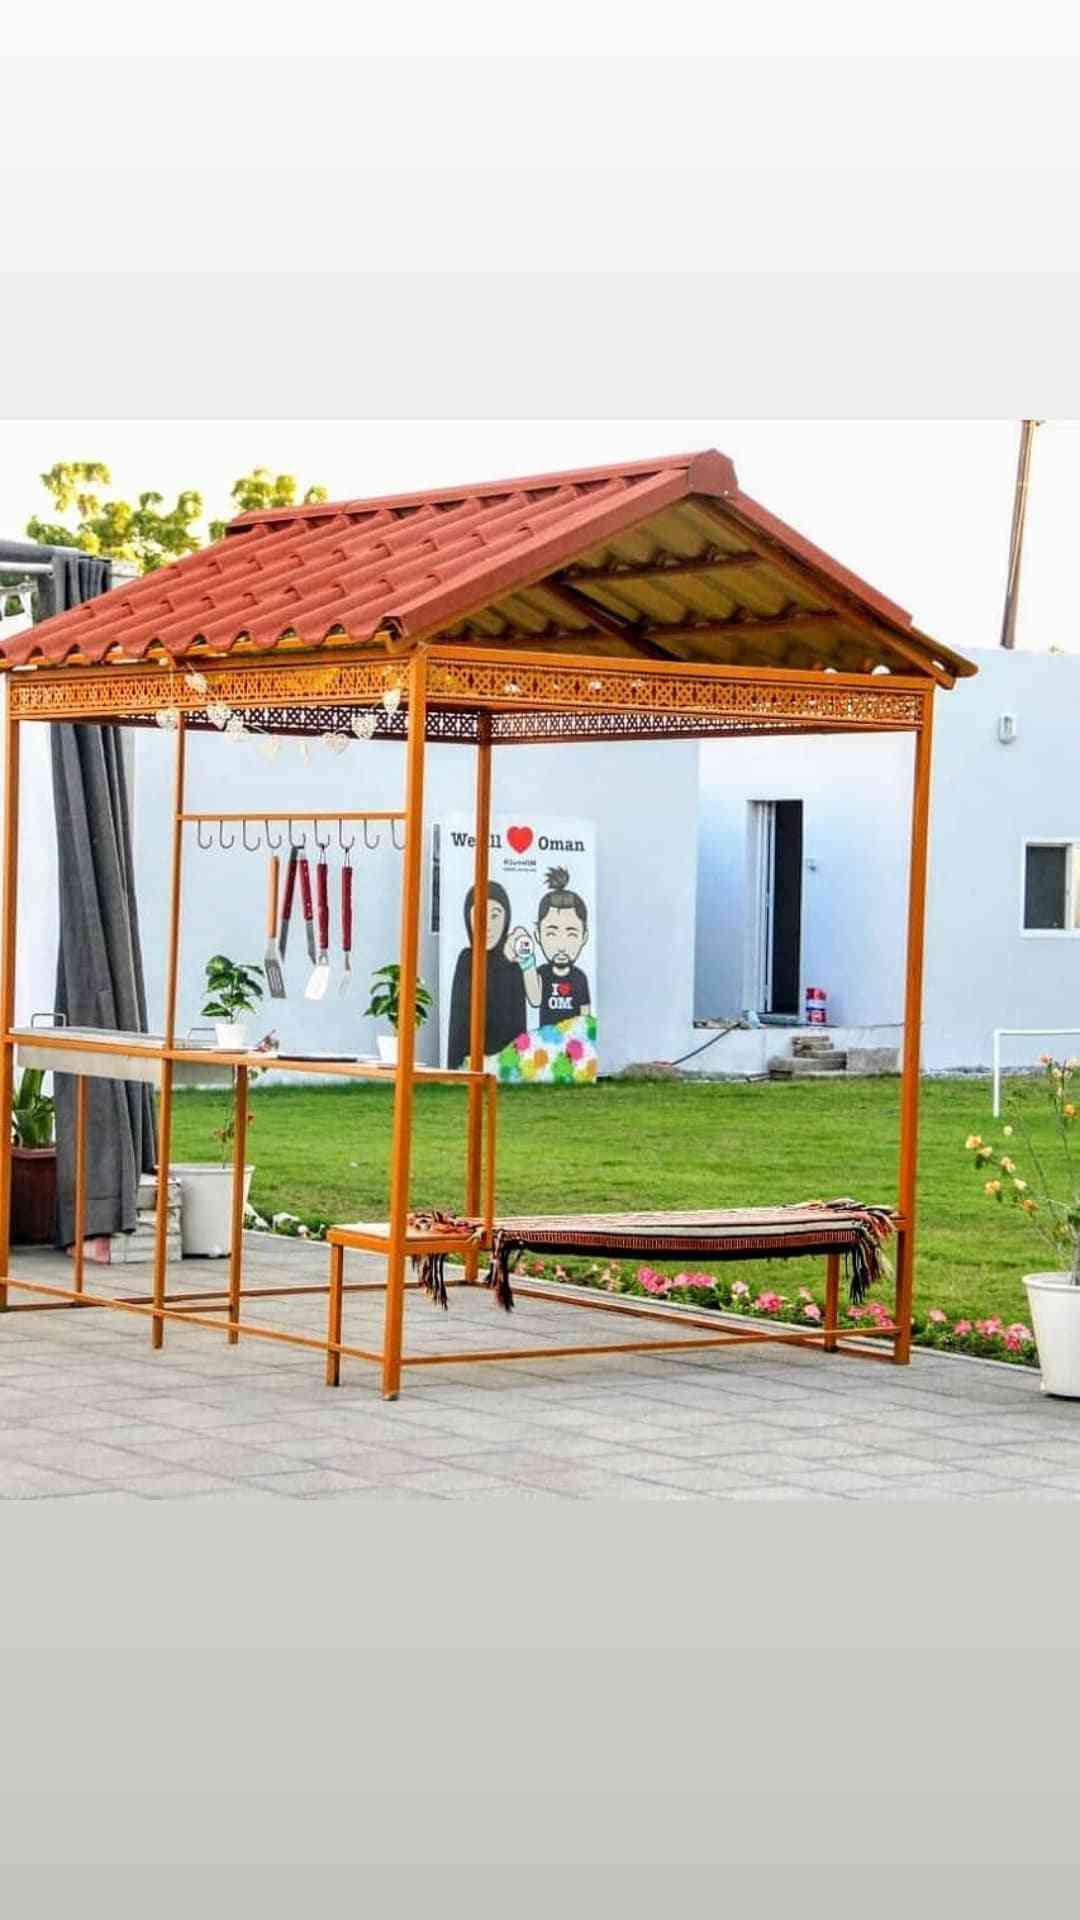 KCJ landscaping provide luxurious swimming pool construction in Dubai. We have constructed several customized swimming pools for our clients in Dubai in the las-  مظلات وسواتر الدمام الخبر...